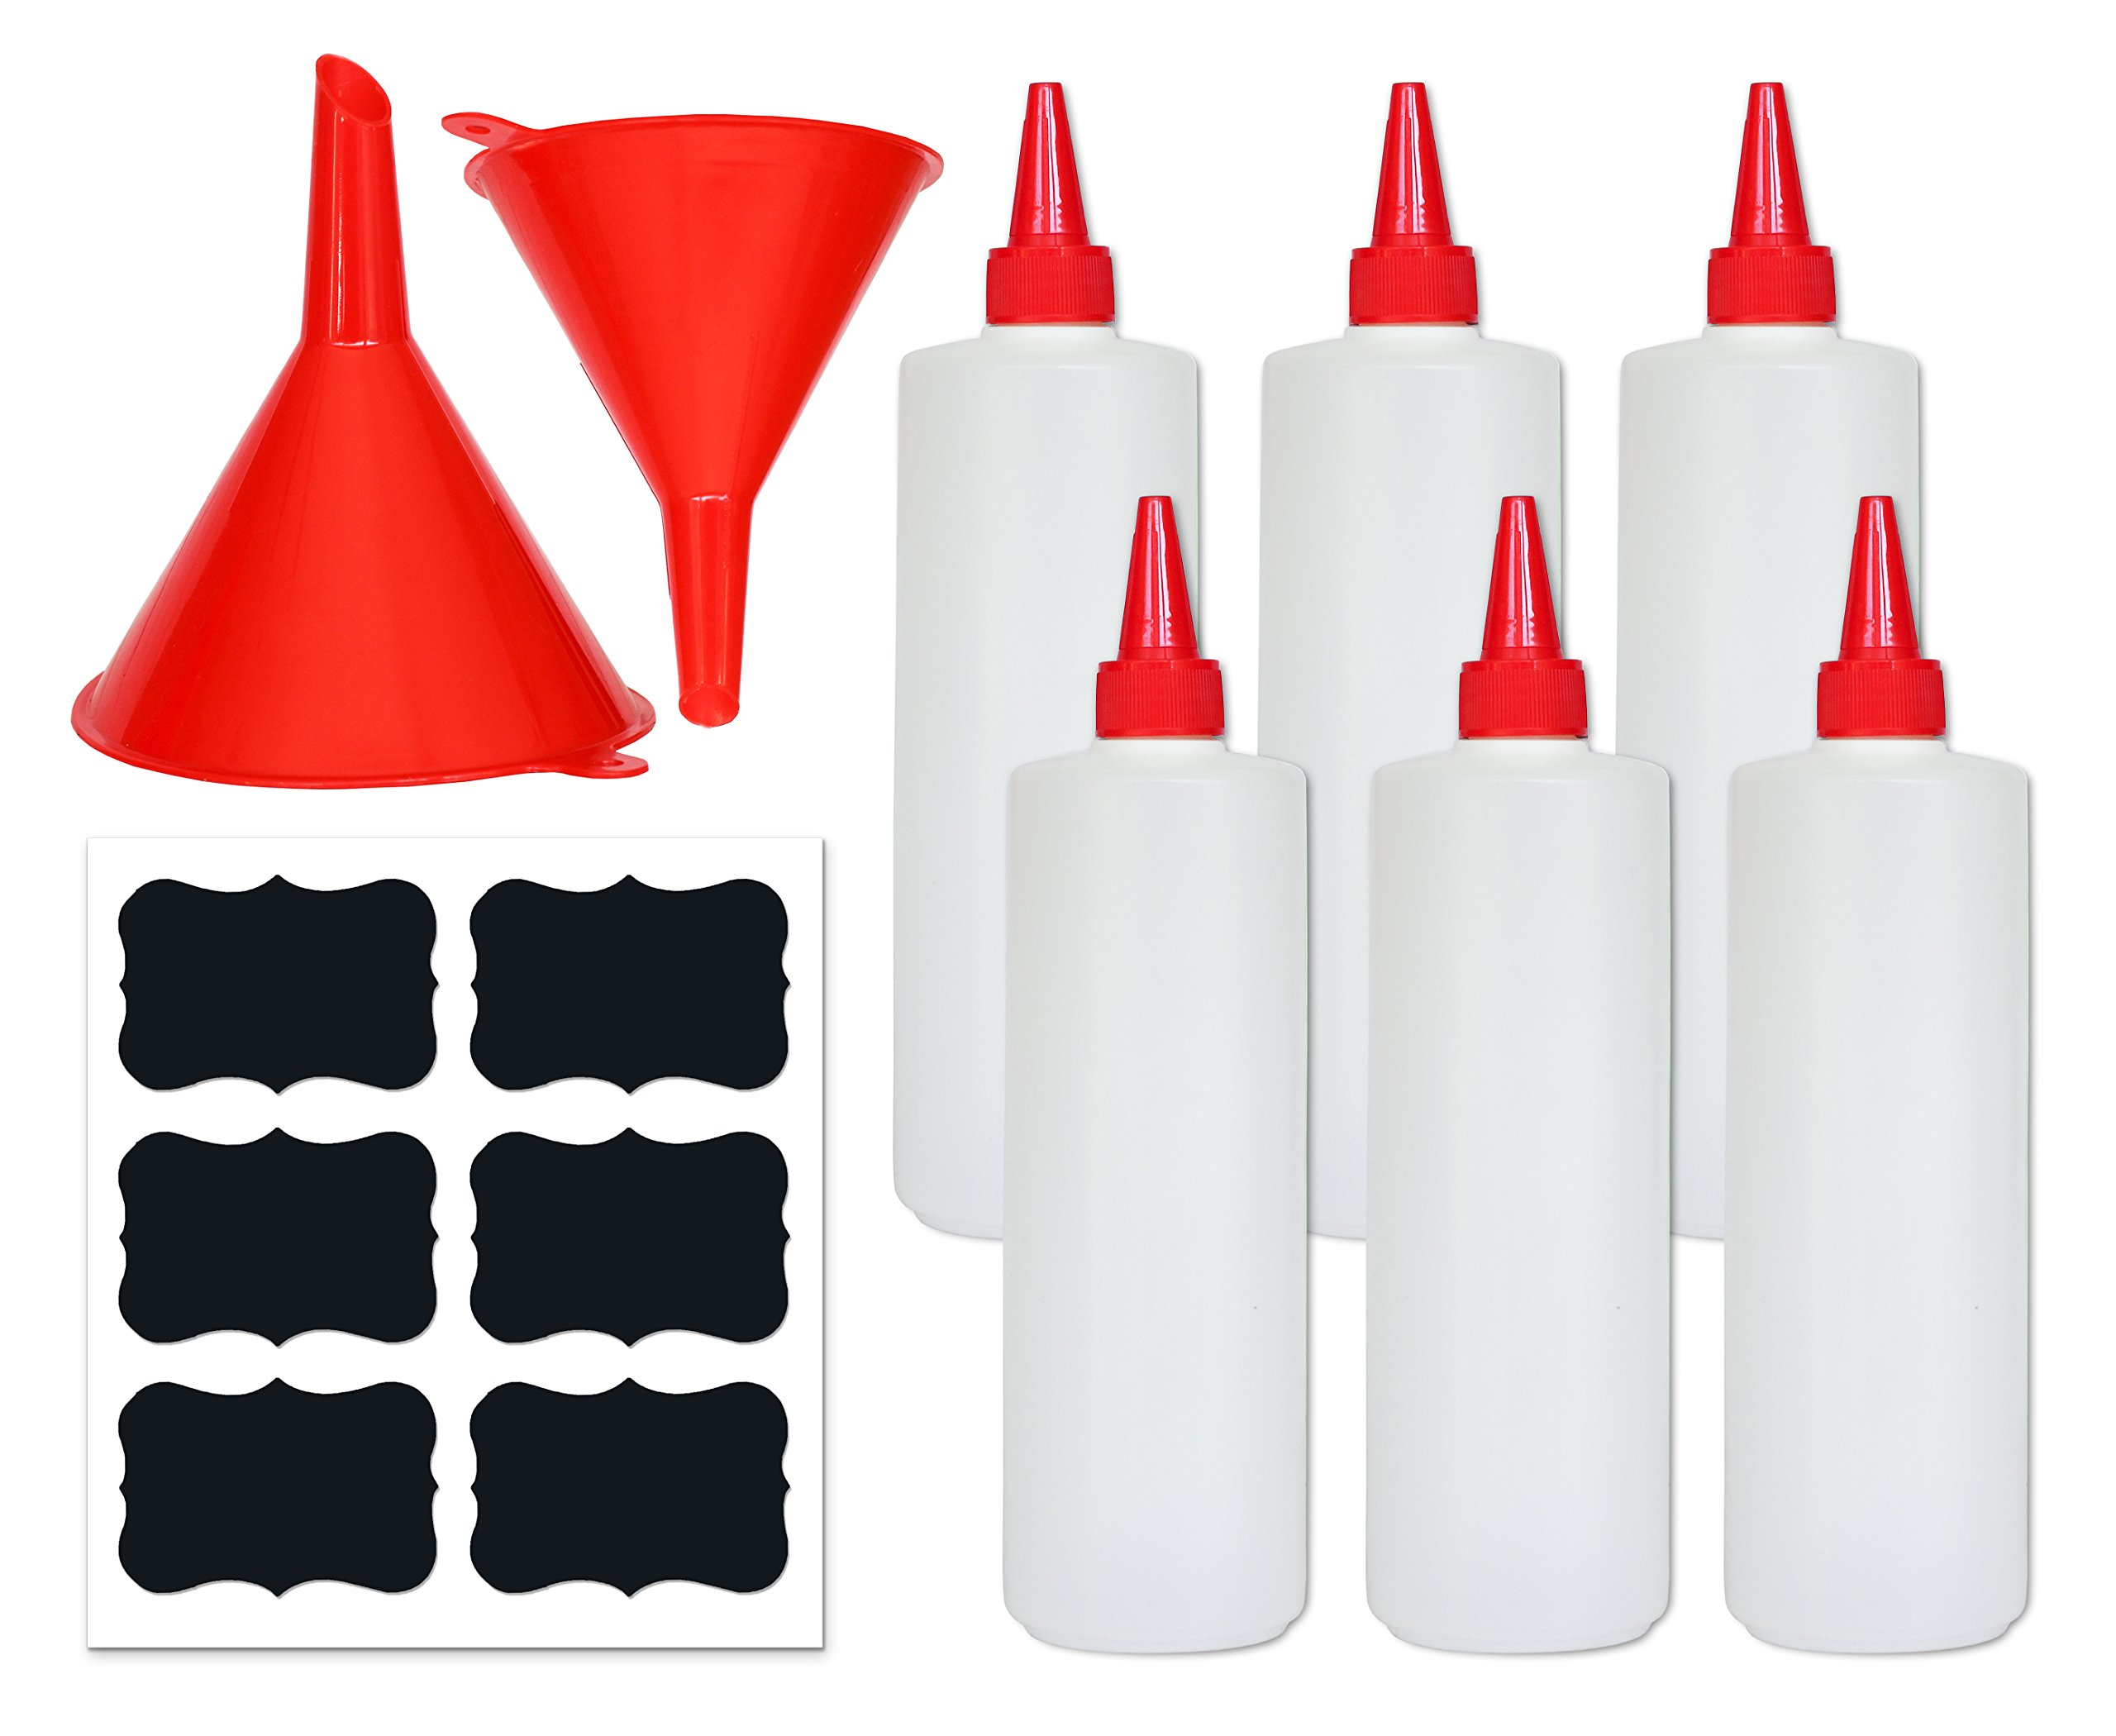 Premium Plastic Squeeze Squirt Bottles for Sauces with Leak-Proof Cap (16 oz, 6 pack) with Writable Exterior and Funnels | Ideal for Condiments, Ketchup, BBQ, Dressing, Paint, Workshop and Pancake Art